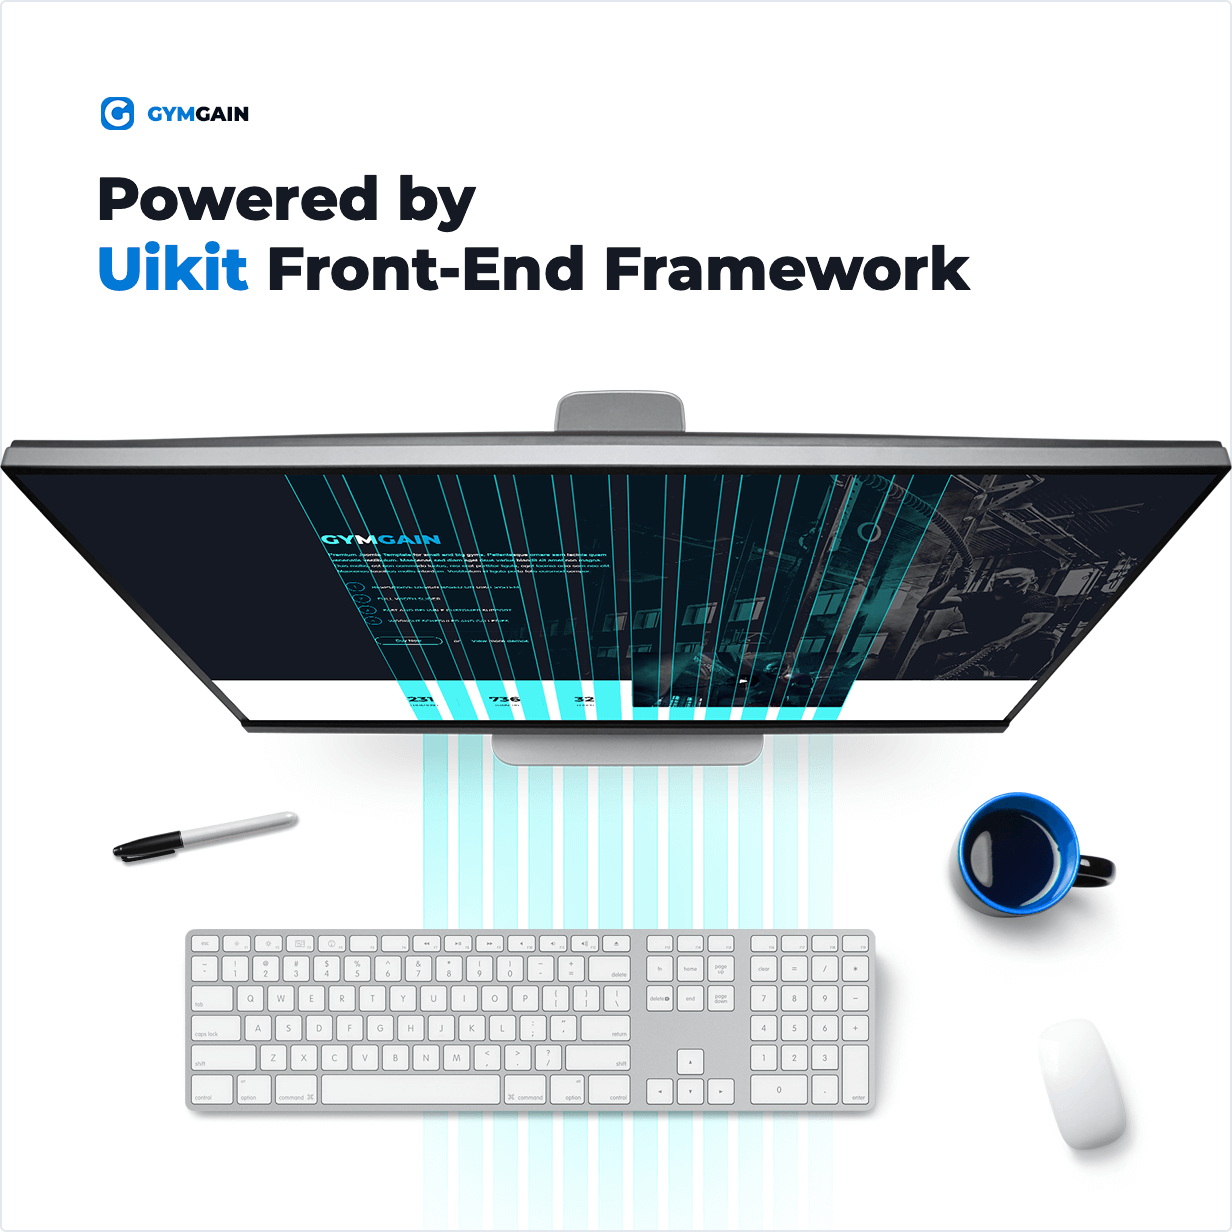 Powered by Uikit Front-End Framework